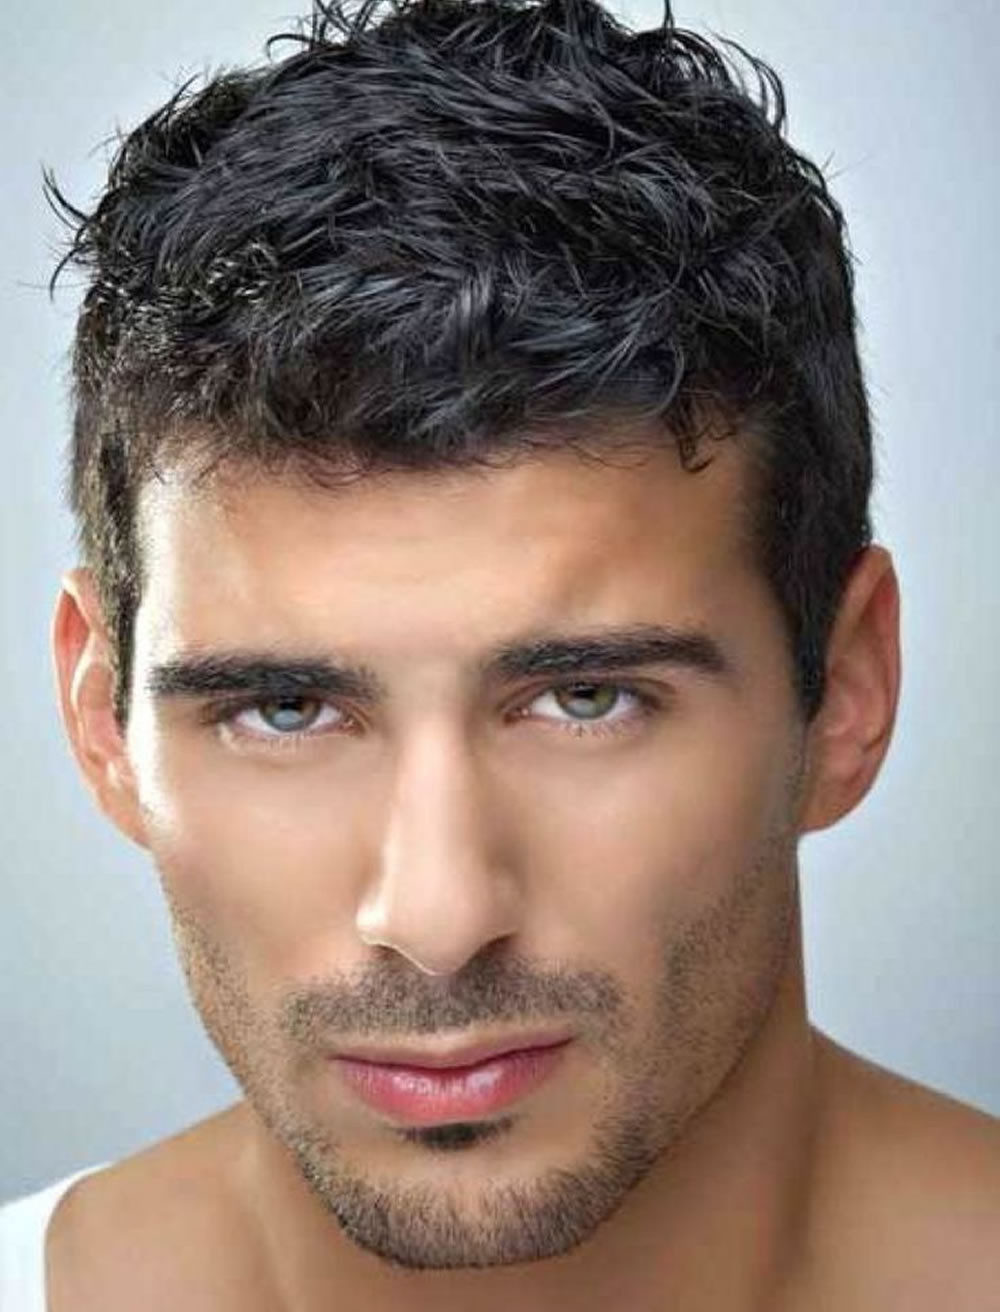 Best ideas about Black Mens Hairstyles 2019 . Save or Pin 23 Cool short haircuts for men 2019 Now.